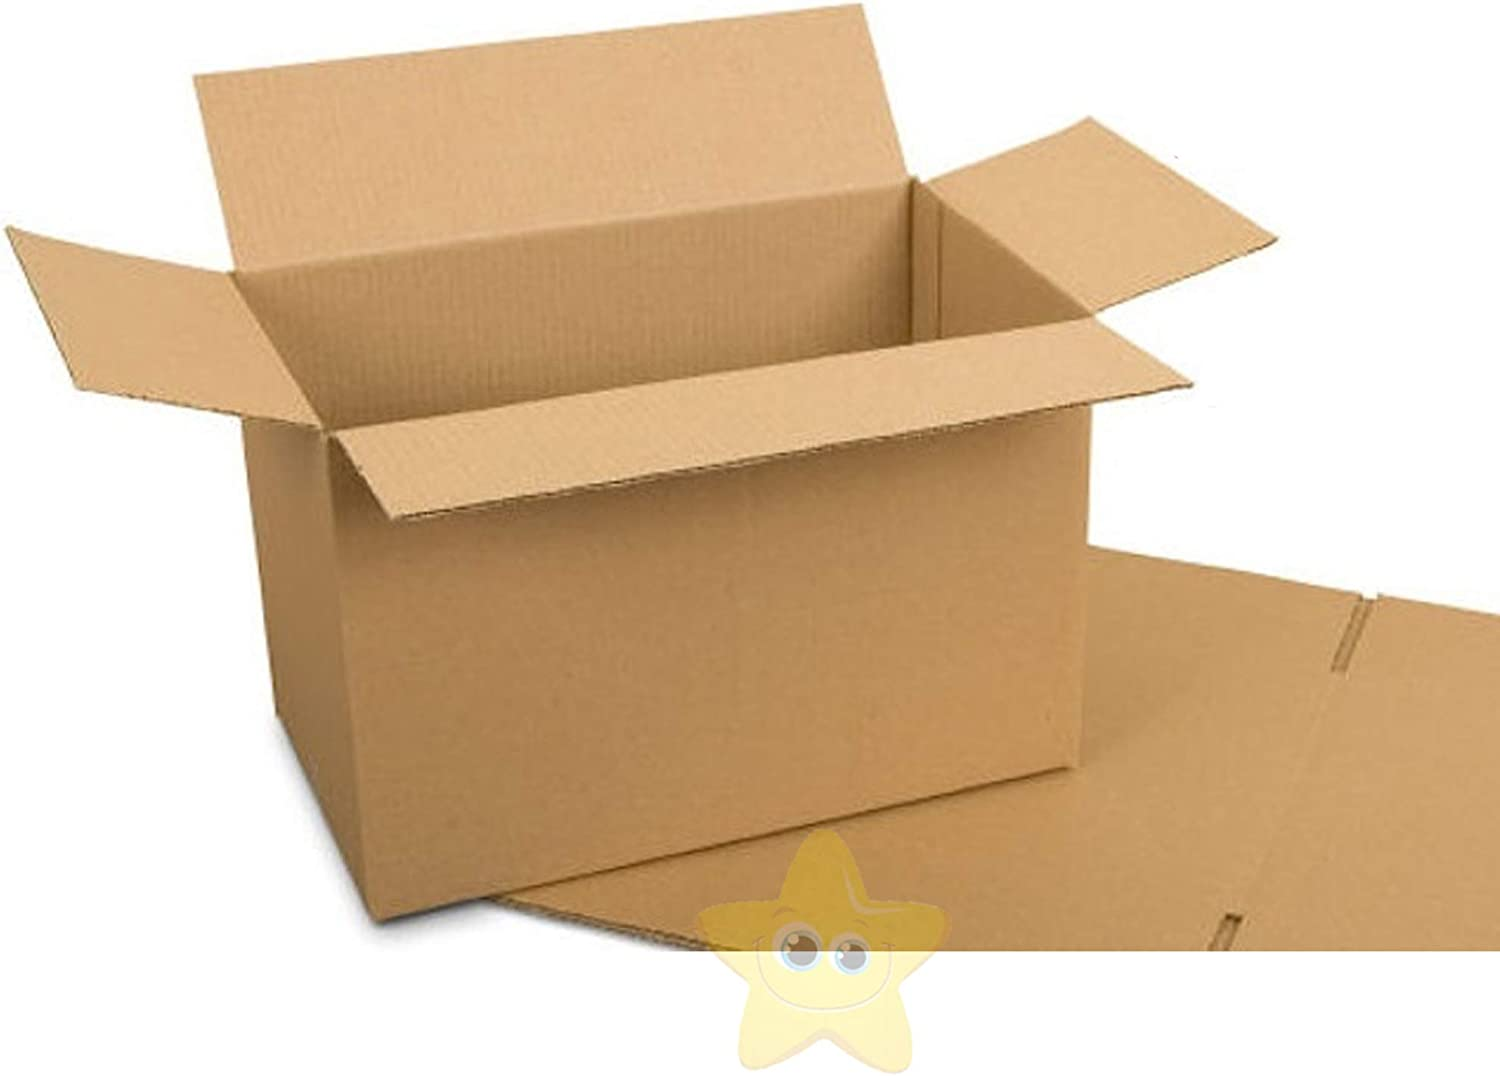 25 Pack Small Shipping Boxes Cardboard Corrugated Delivery Supplies Strong 8x6x4